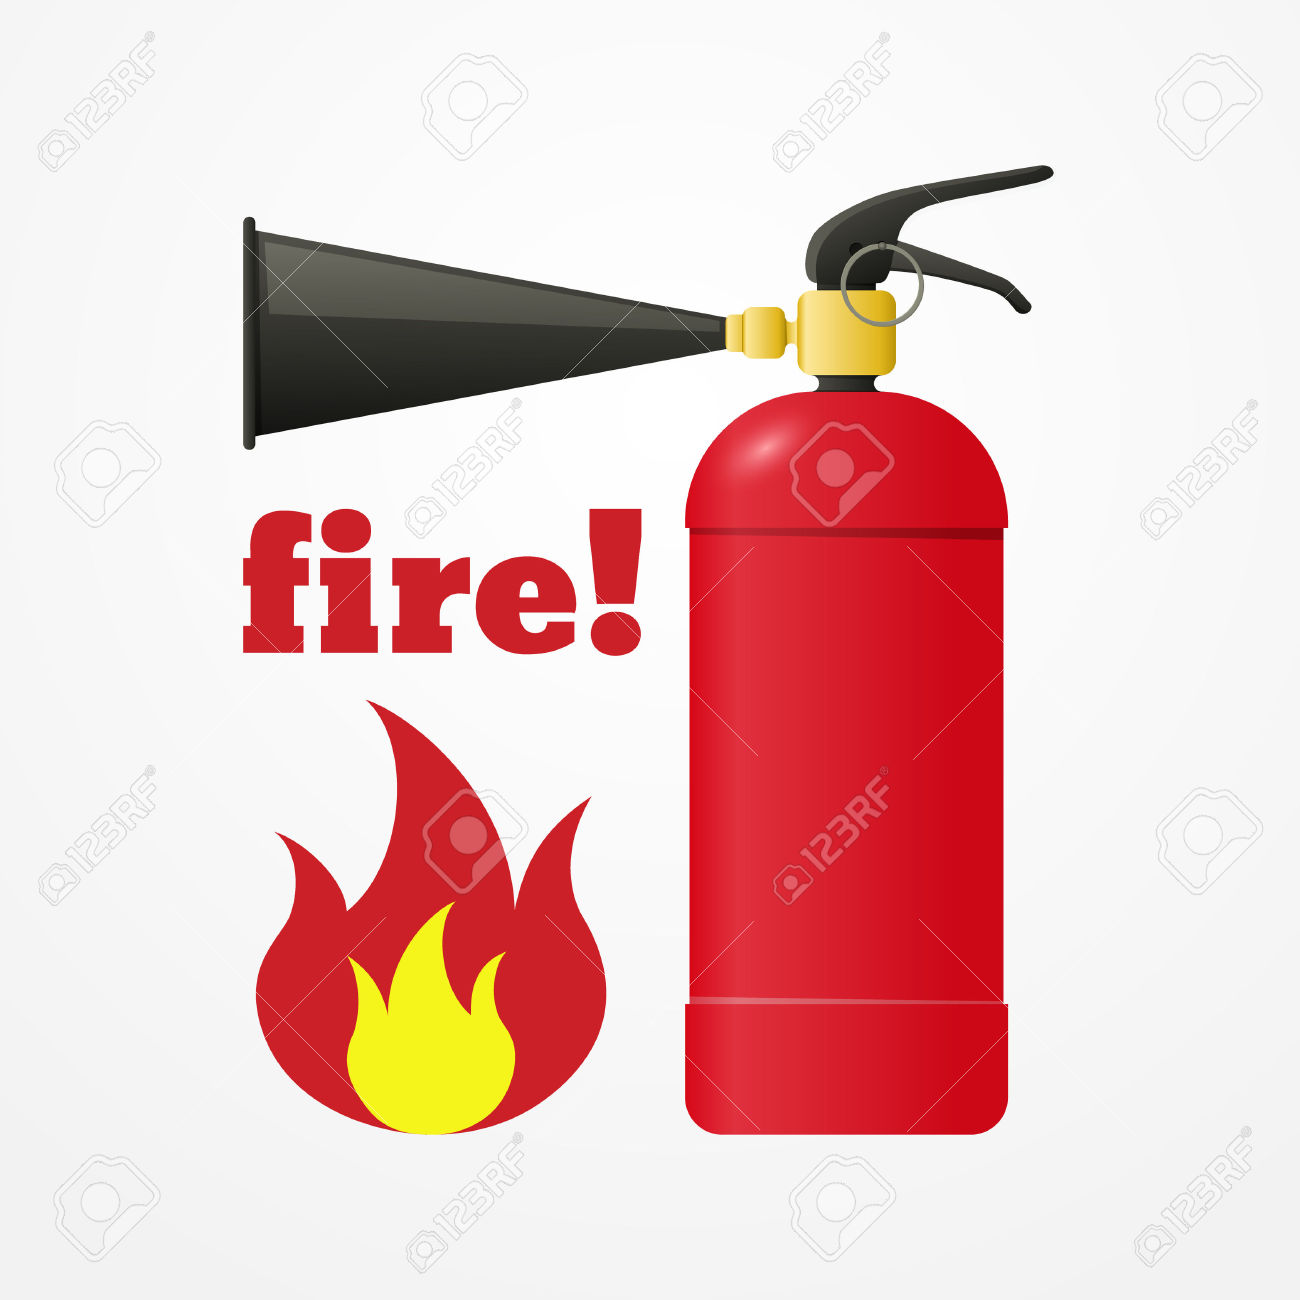 911 clipart fire emergency. Flame pencil and in